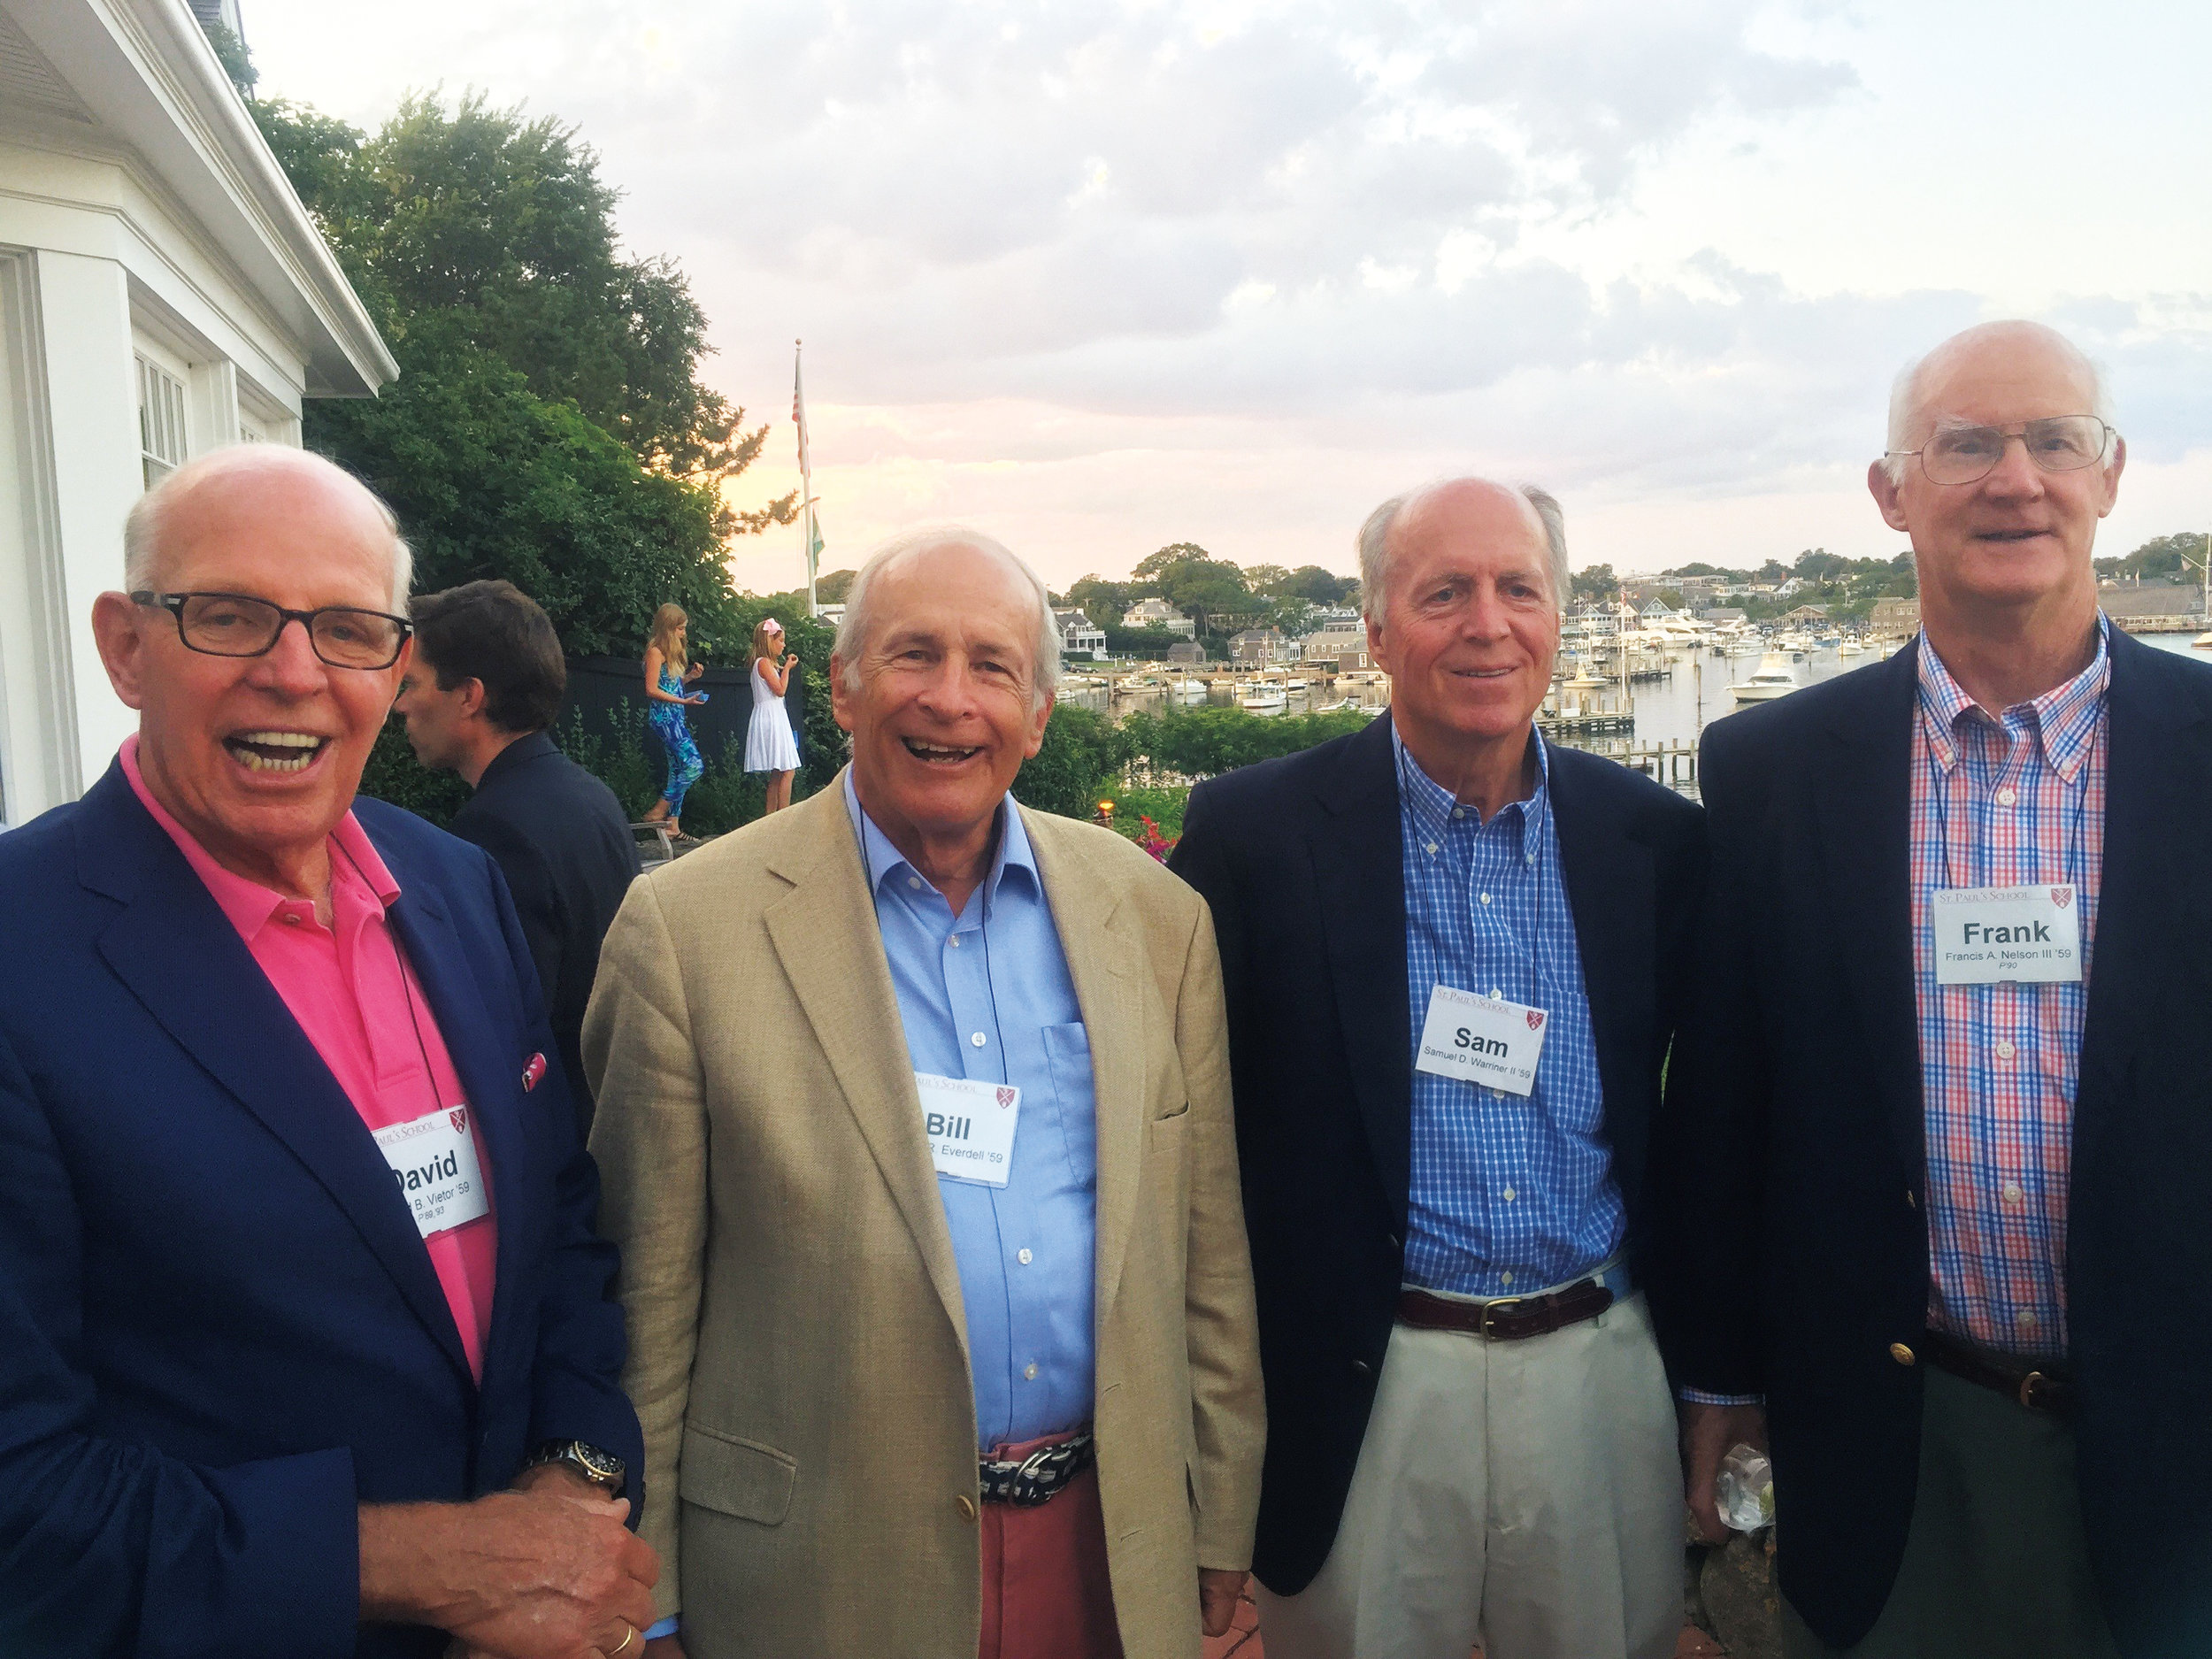 1959 Formmates at a School gathering on Martha's Vineyard in August (l. to r.): David Vietor, Bill Everdell, Sam Warriner, and newlywed Frank Nelson.